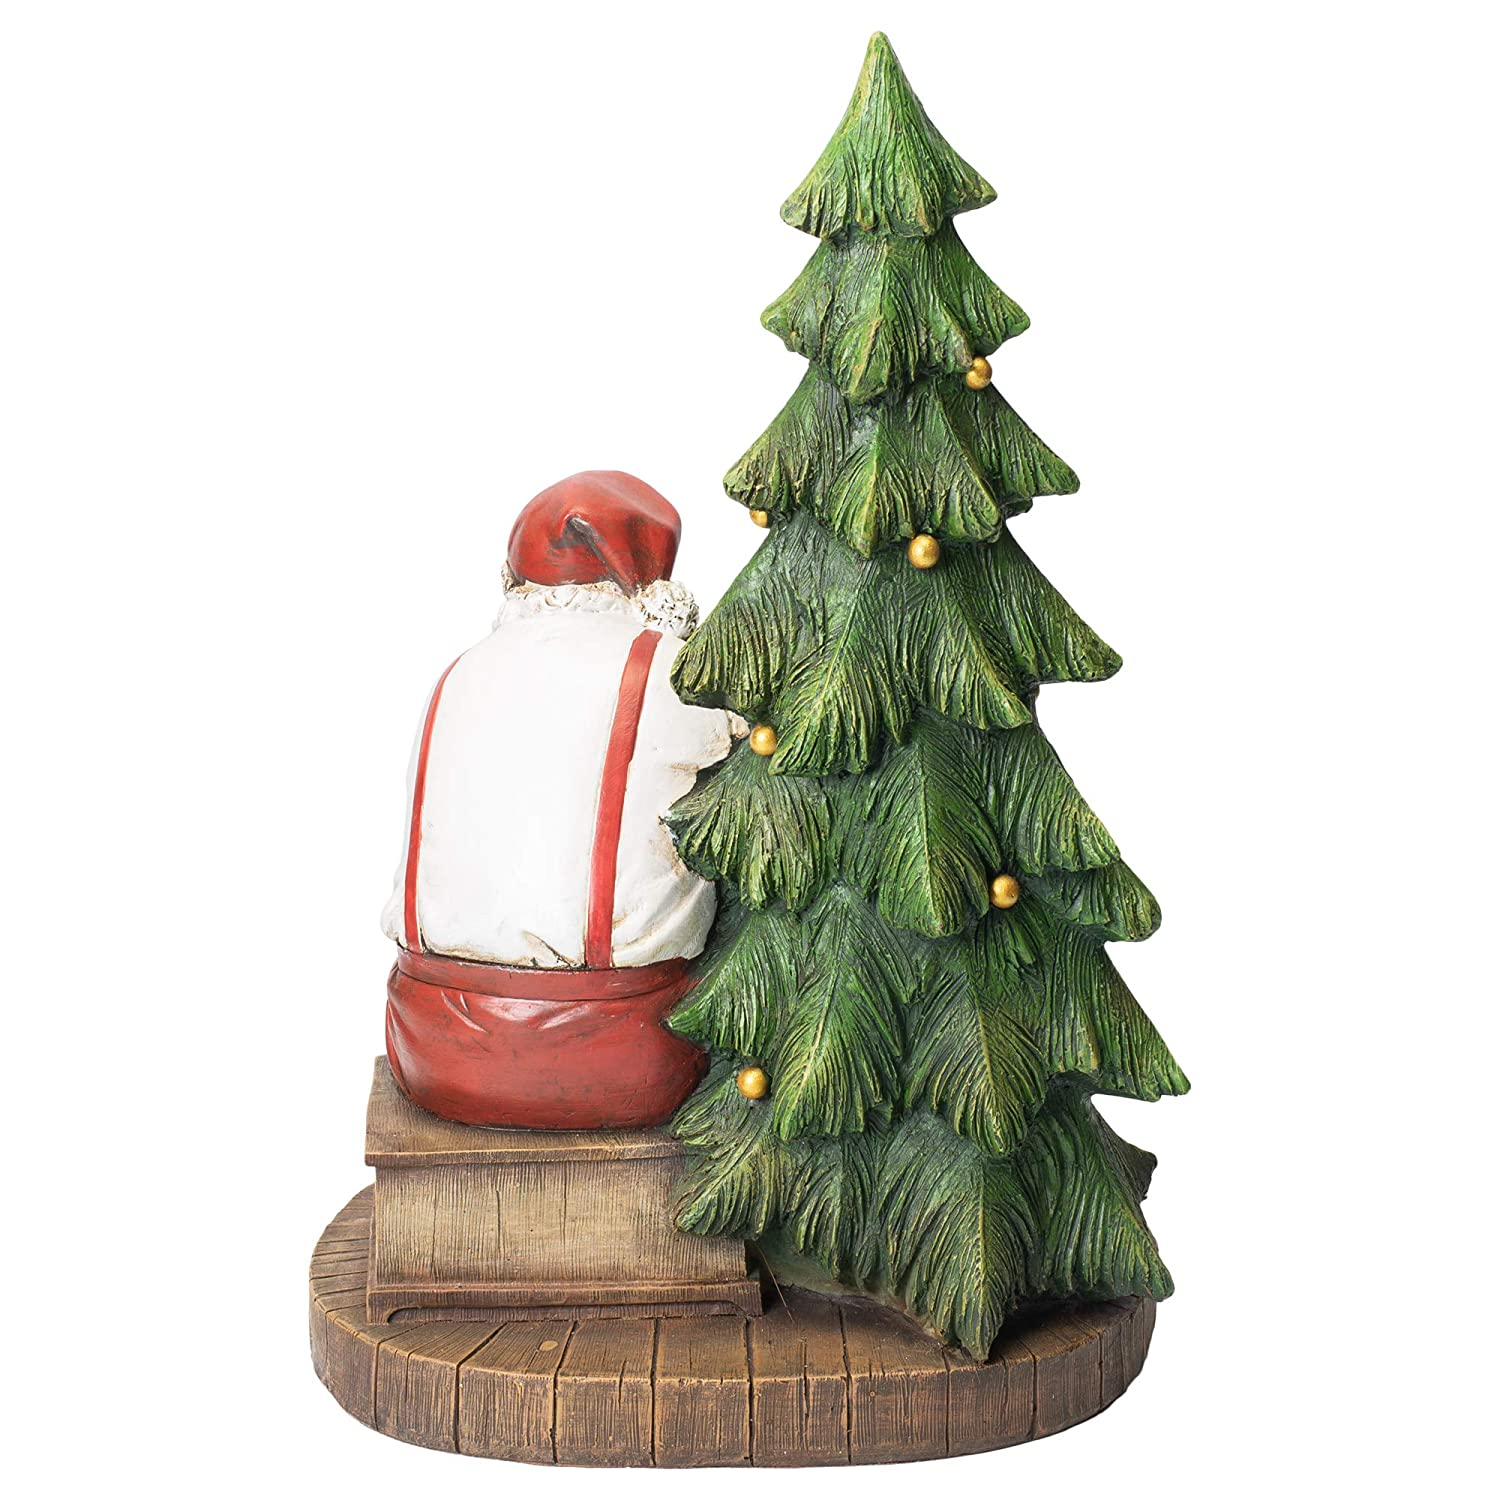 Napco Imports Santa and Child on Rocking Chair 10 x 16 Inch Resin Decorative Christmas Figurine